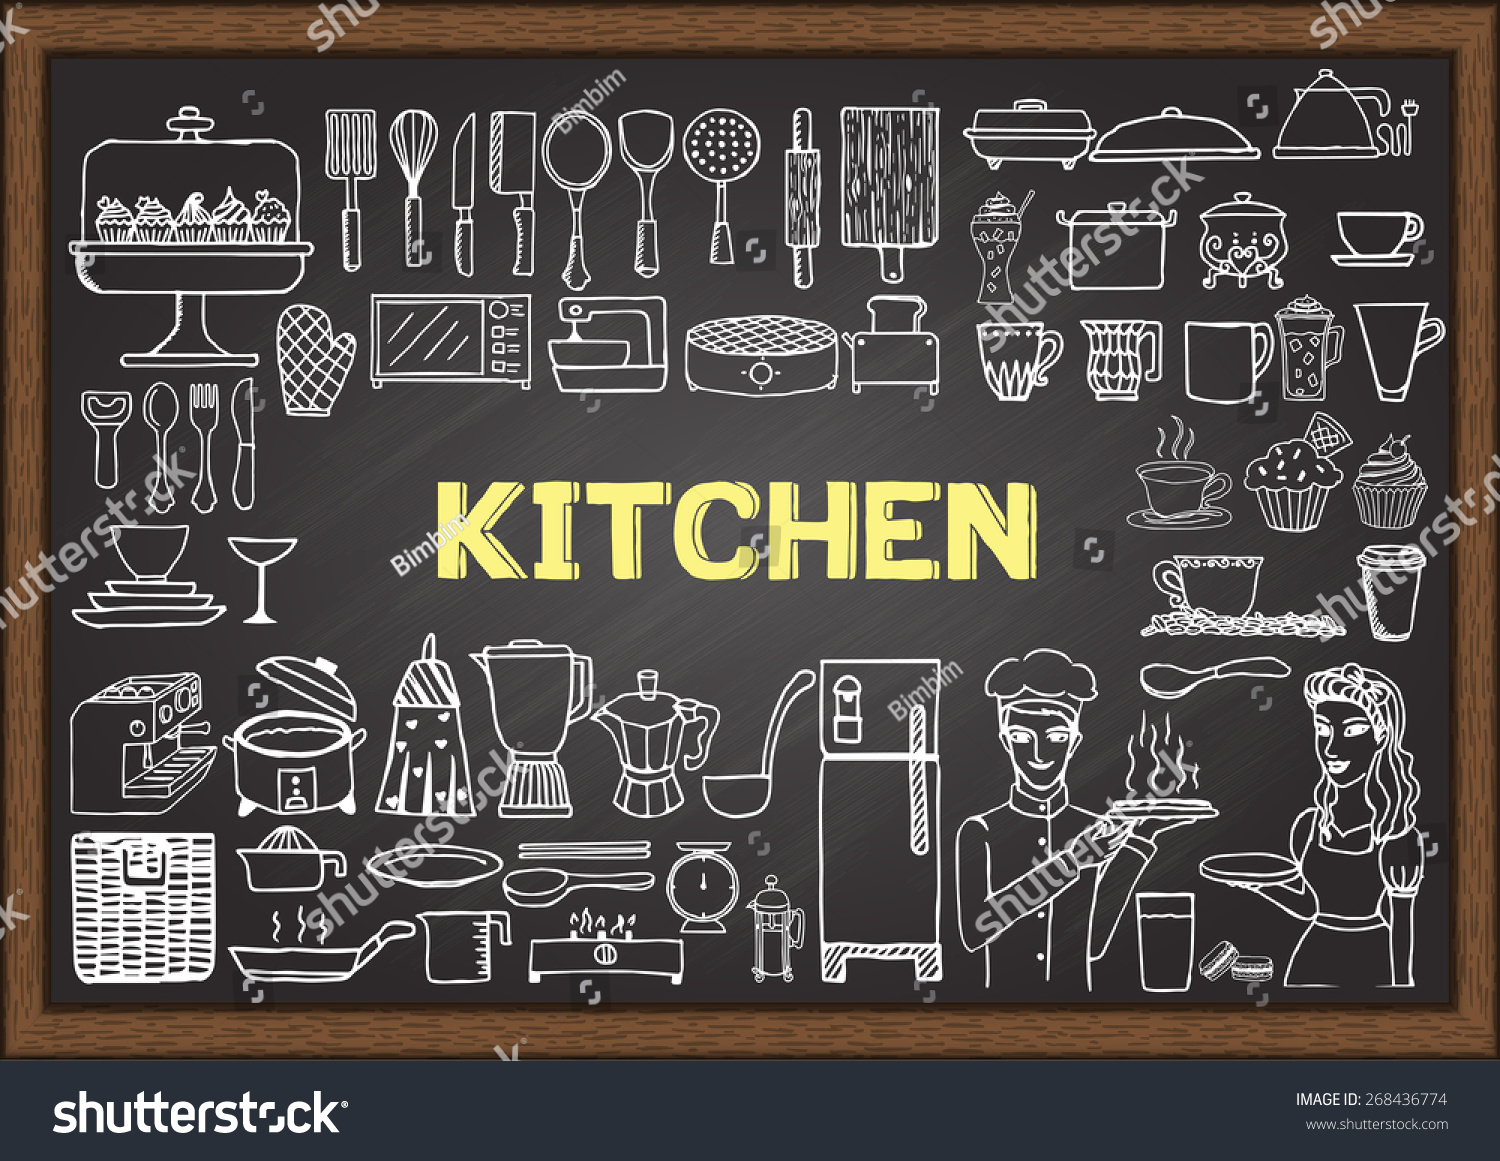 Hand drawn kitchen equipment on chalkboard stock vector